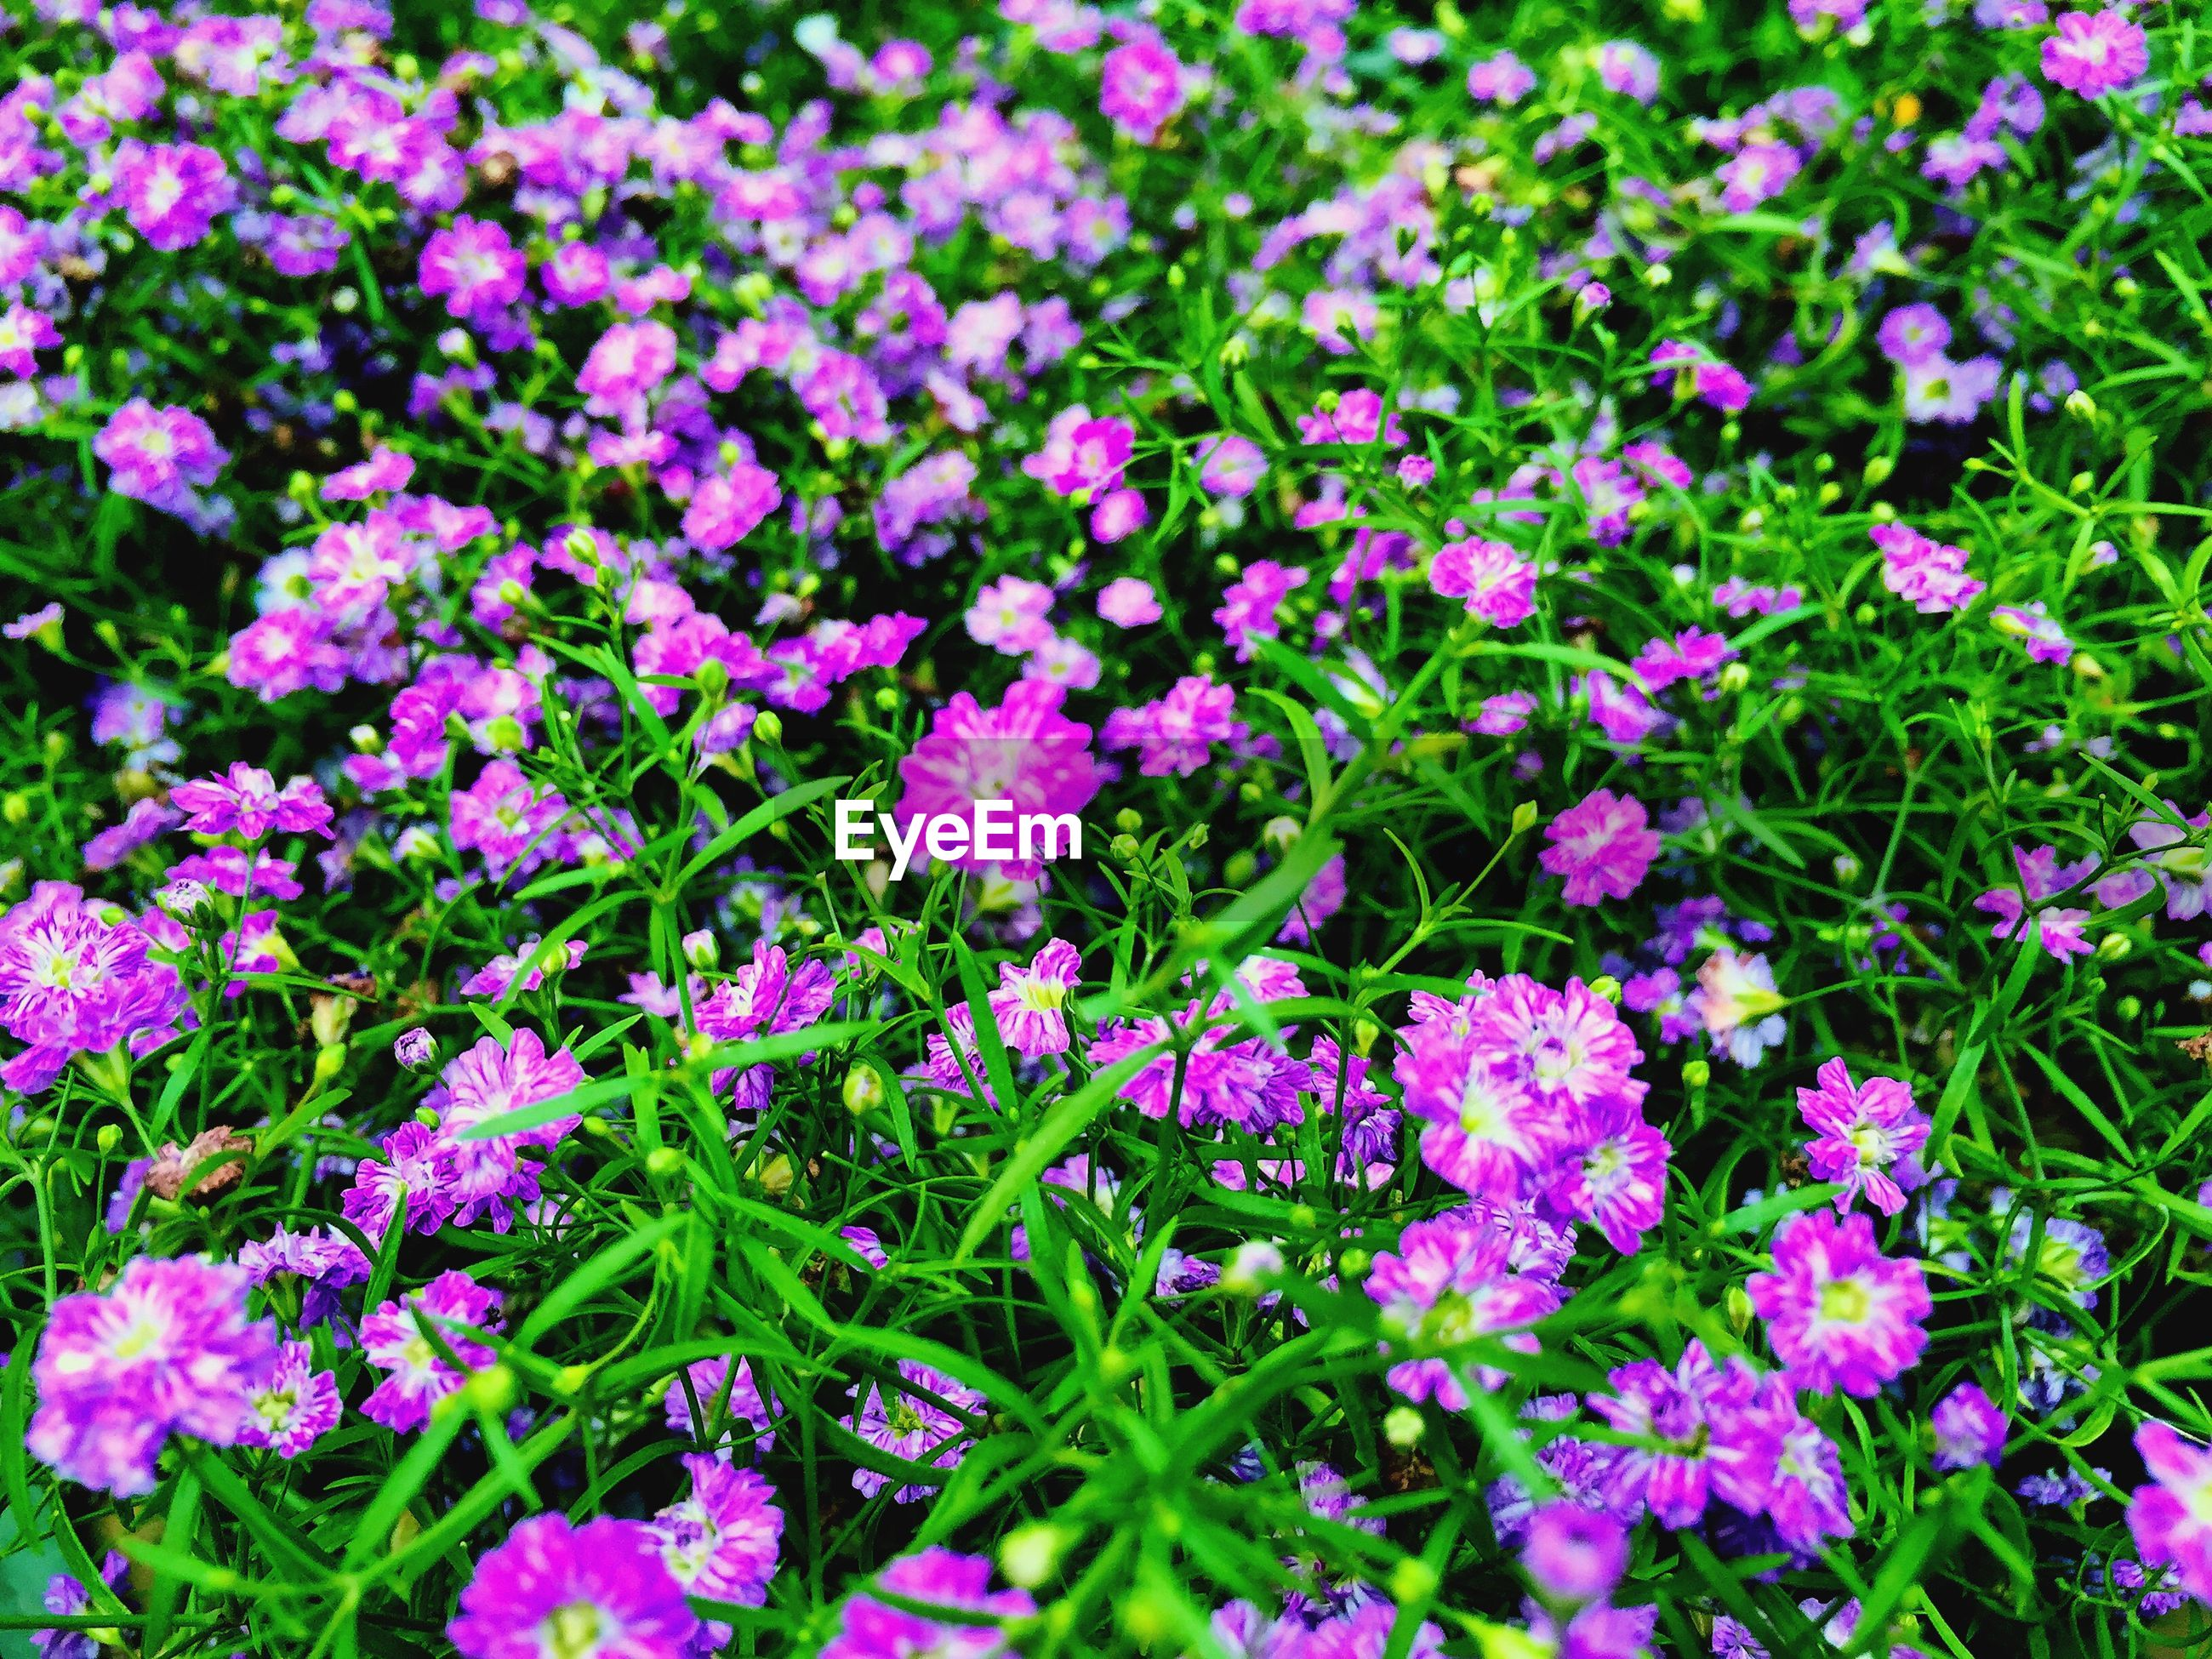 HIGH ANGLE VIEW OF PURPLE FLOWERING PLANT